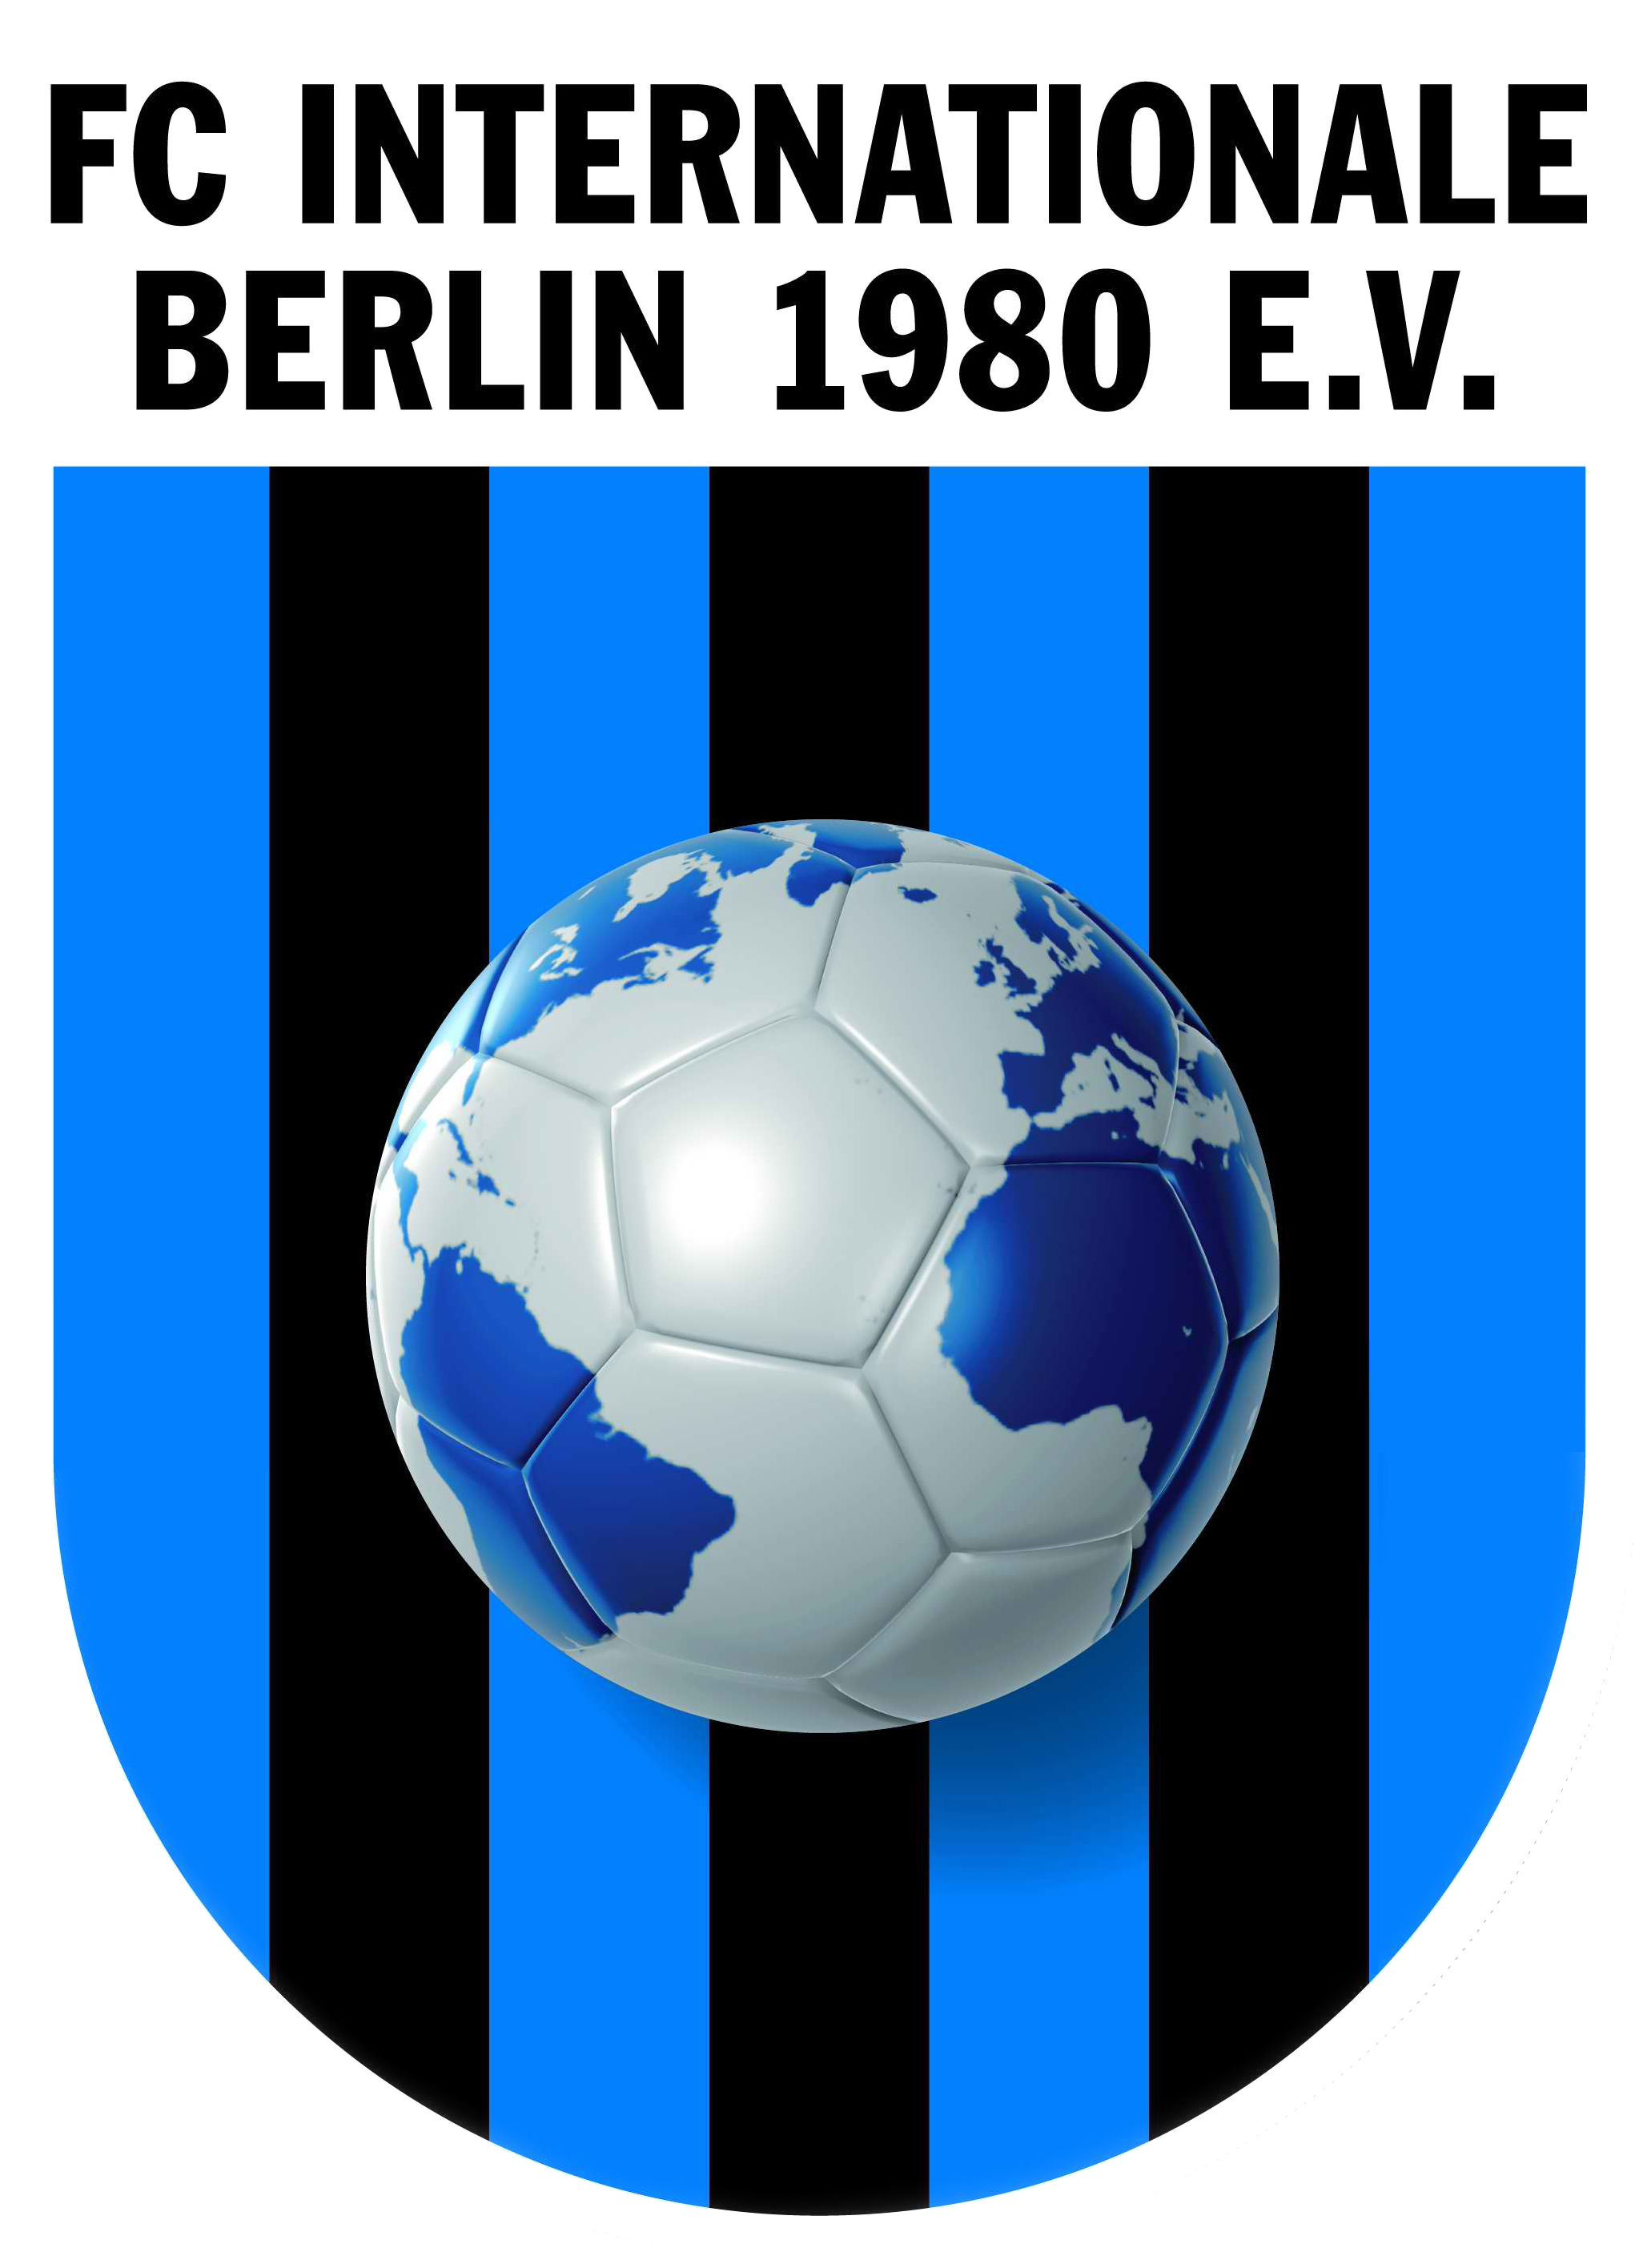 Intershop (Onlineshop des FC Internationale Berlin)